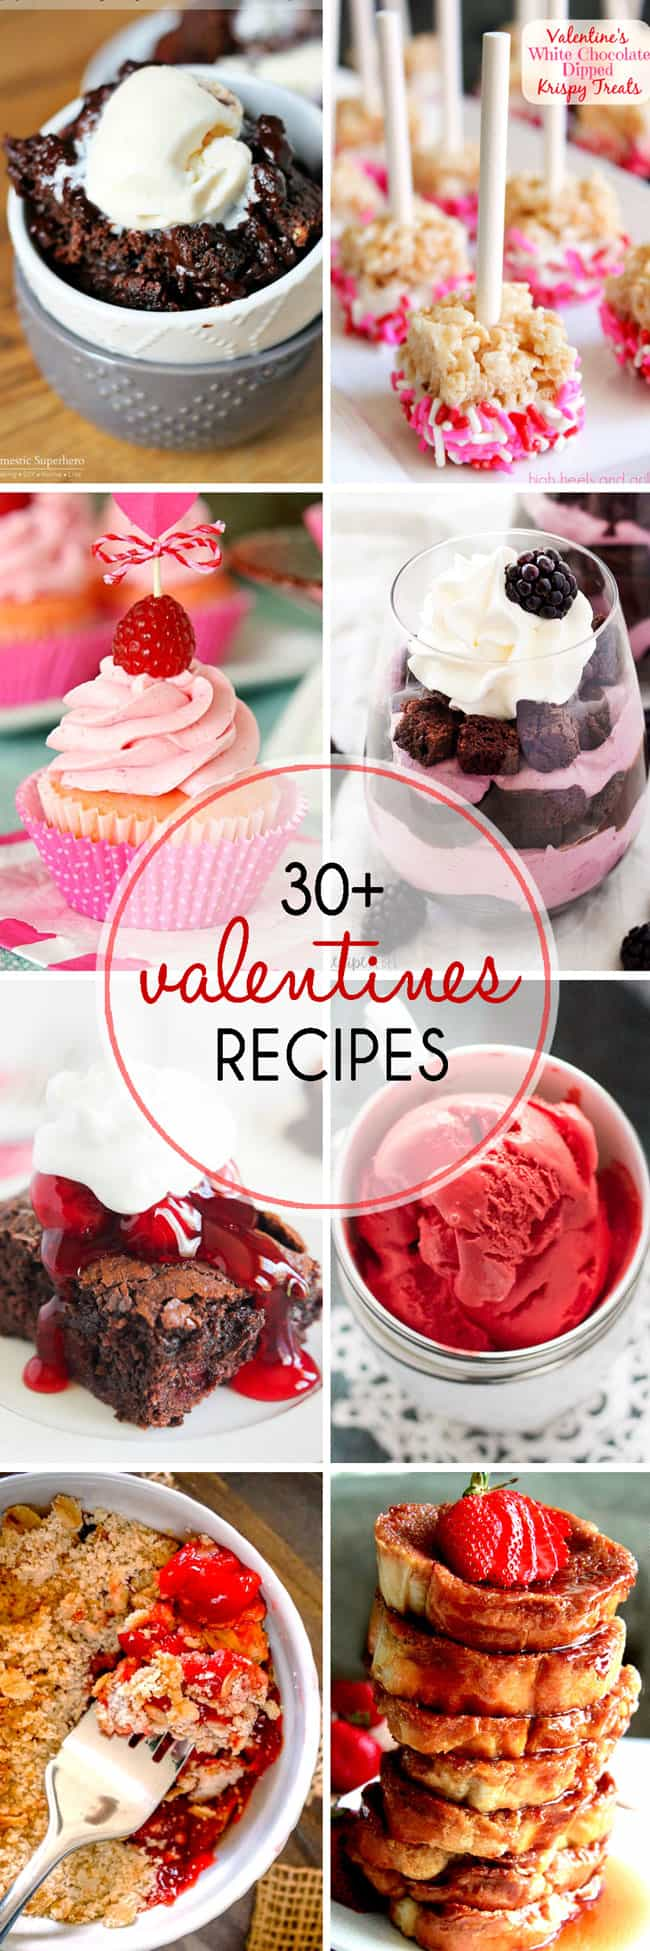 I've rounded up 30+ Valentines Recipes that are both romantic and delicious. They are the perfect way to feed your loved ones this holiday.